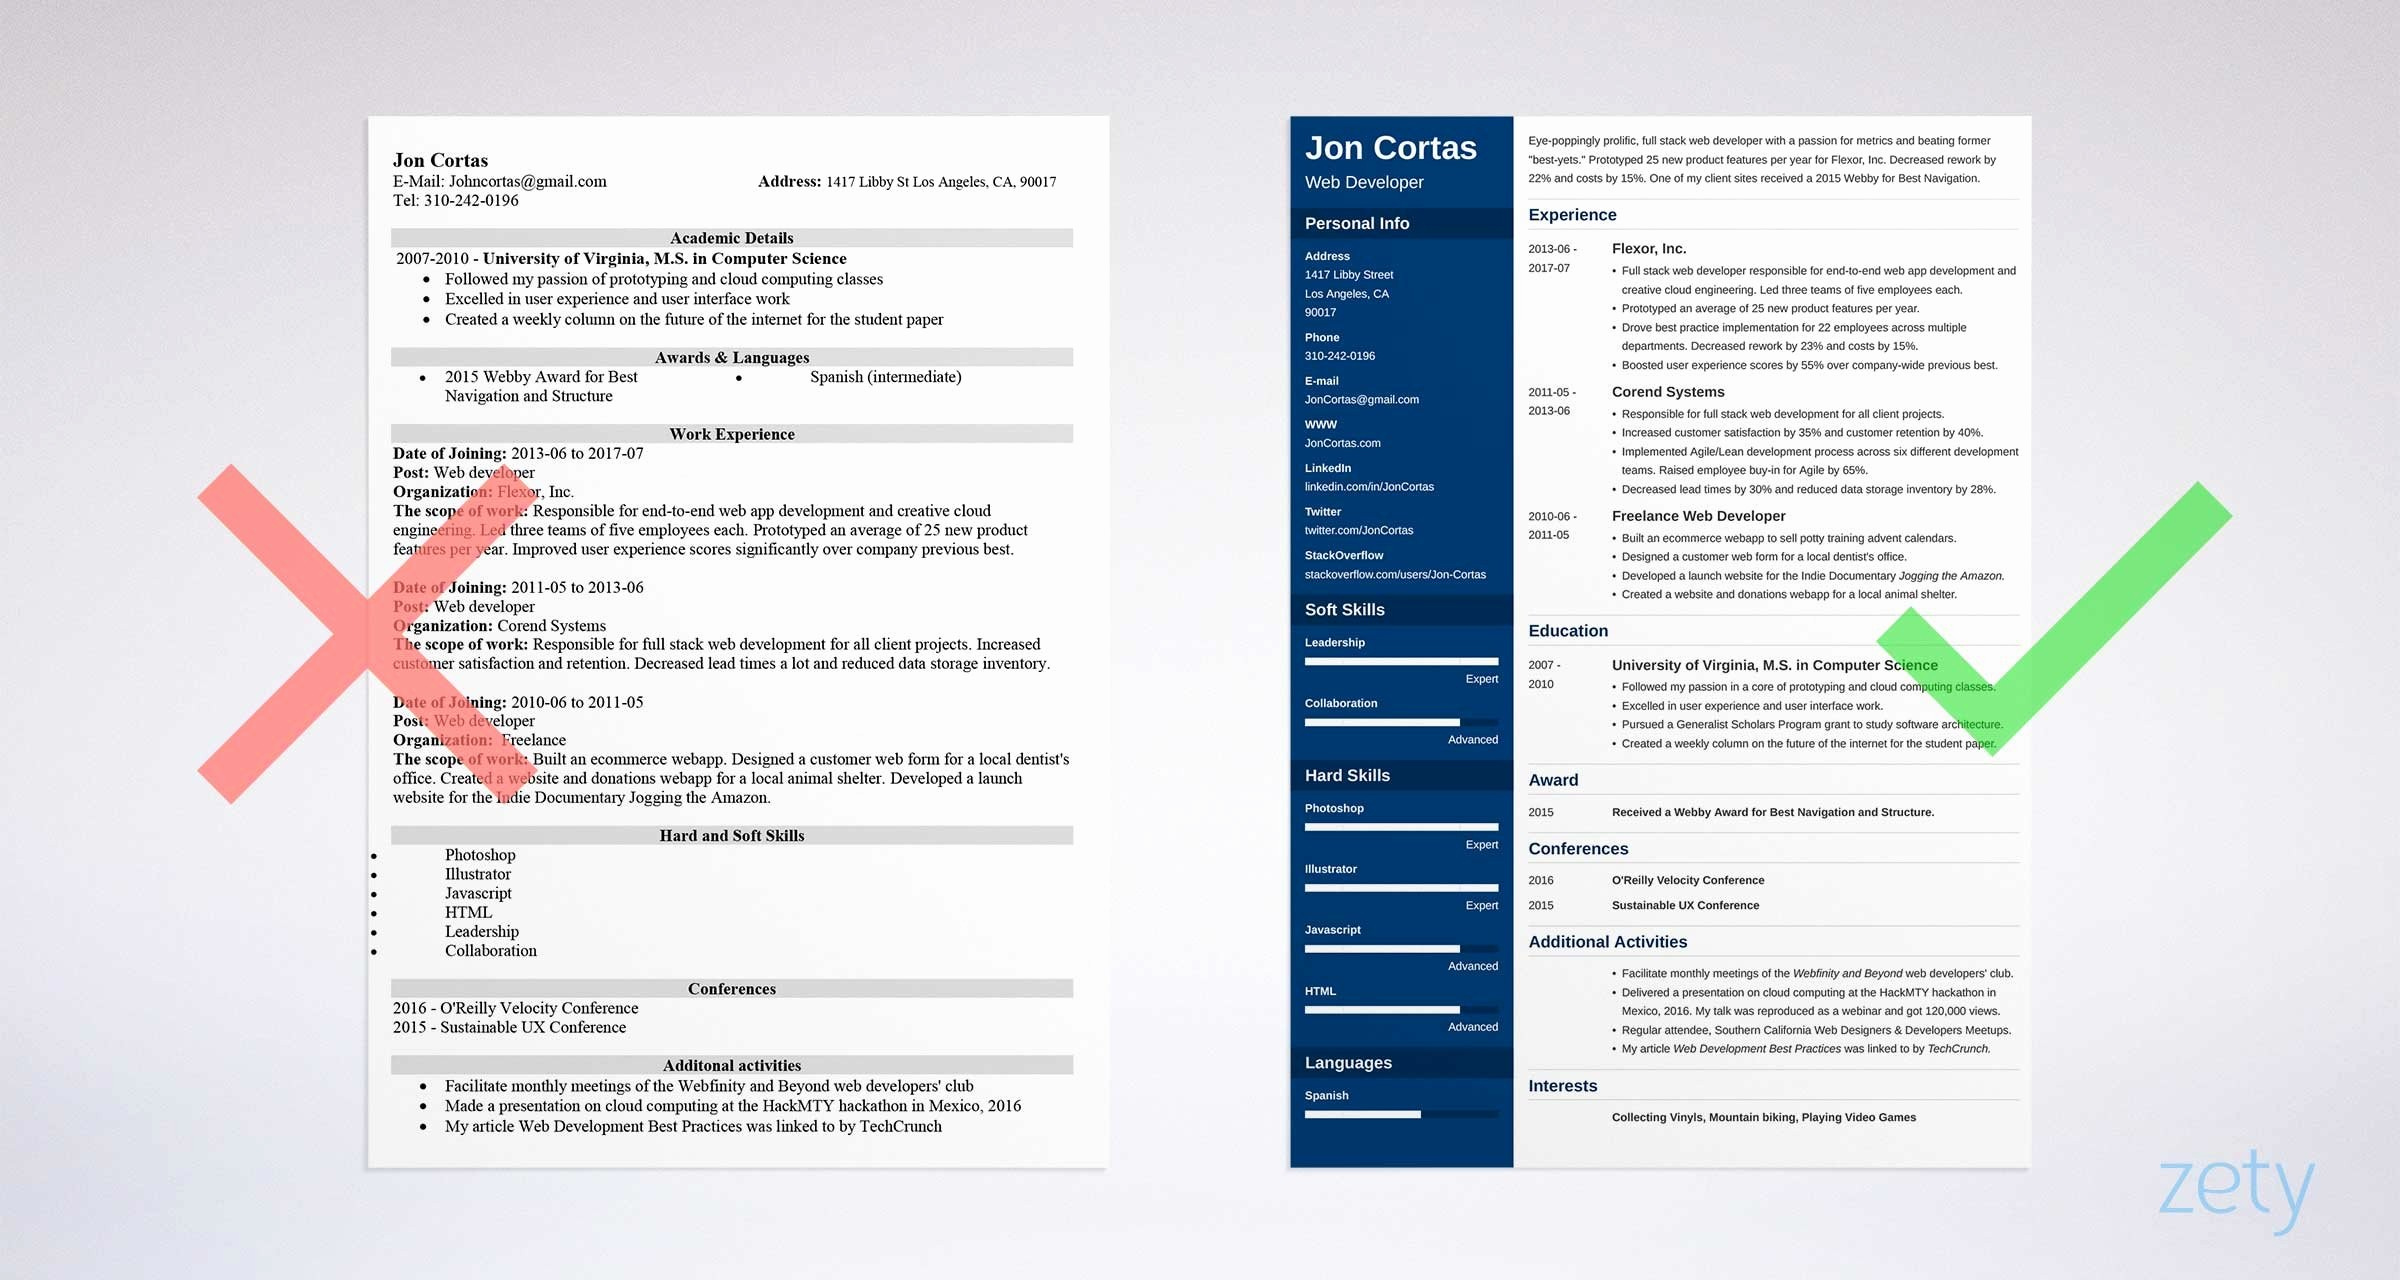 Resume Templates Free Microsoft Word Lovely Free Resume Templates for Word 15 Cv Resume formats to